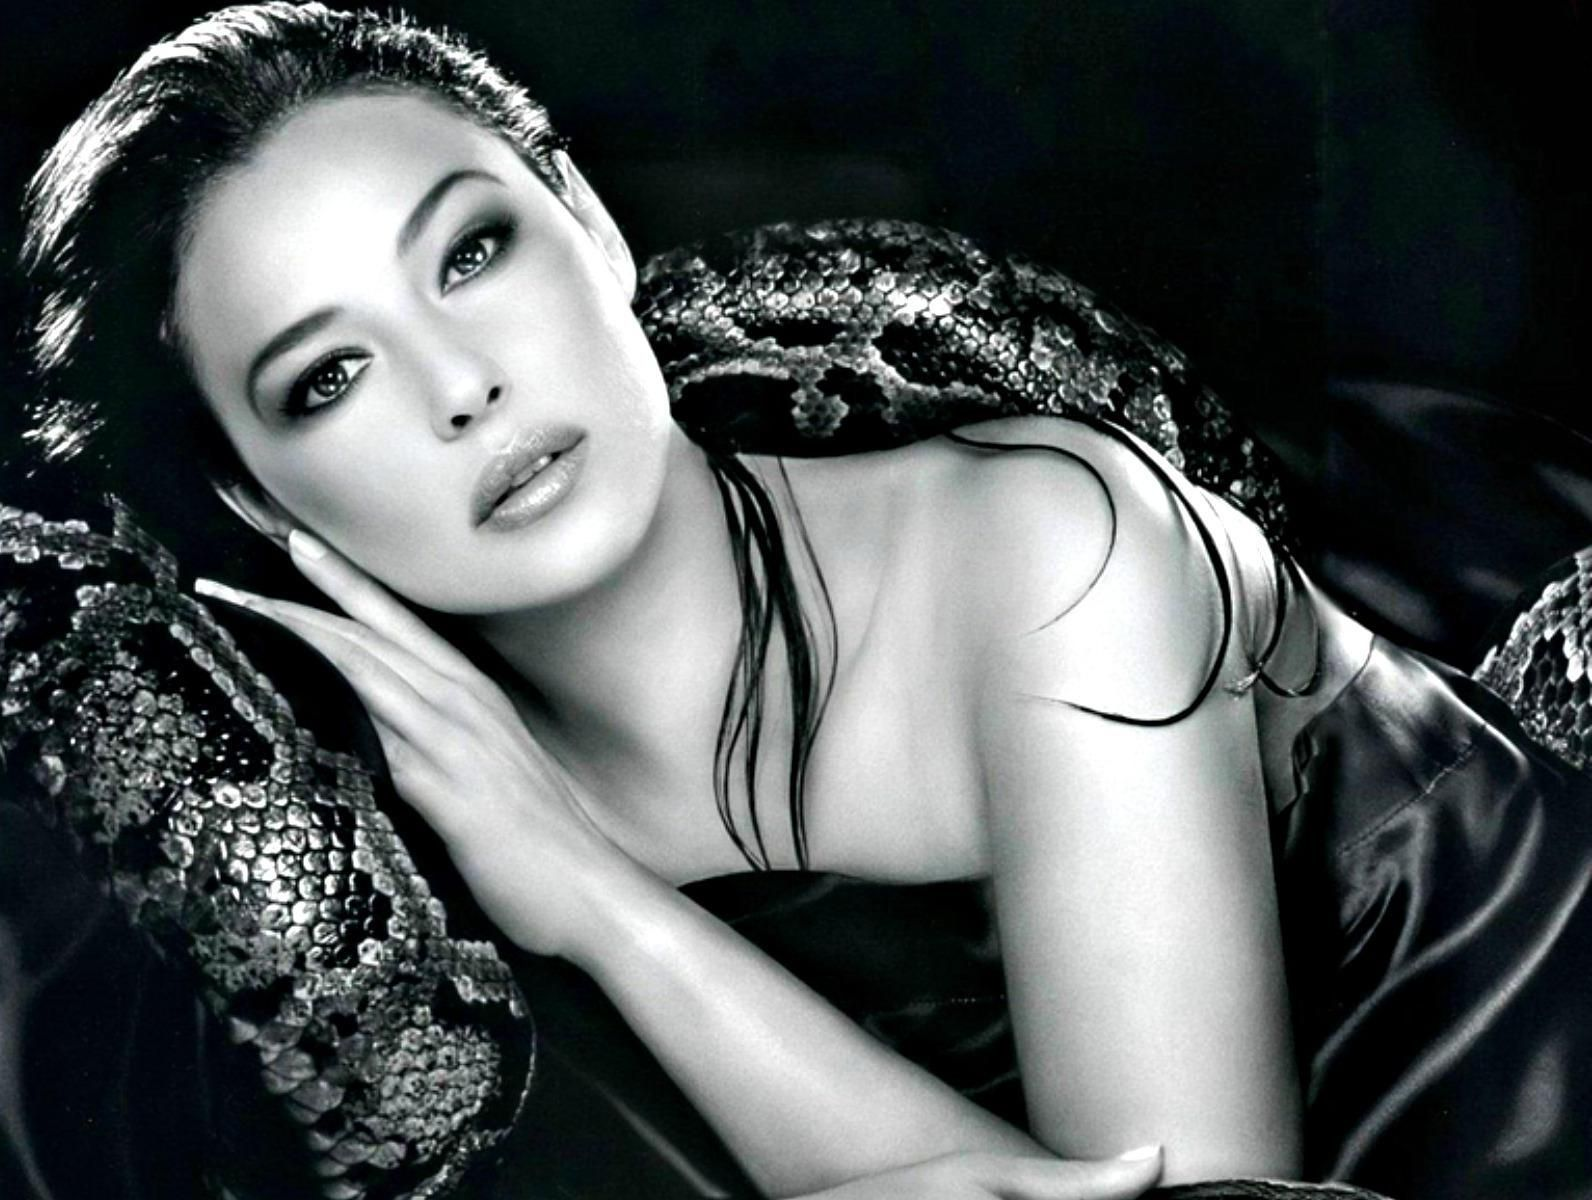 60 sexy monica bellucci hd wallpaper monica bellucci and hd 60 sexy monica bellucci hd wallpaper voltagebd Choice Image